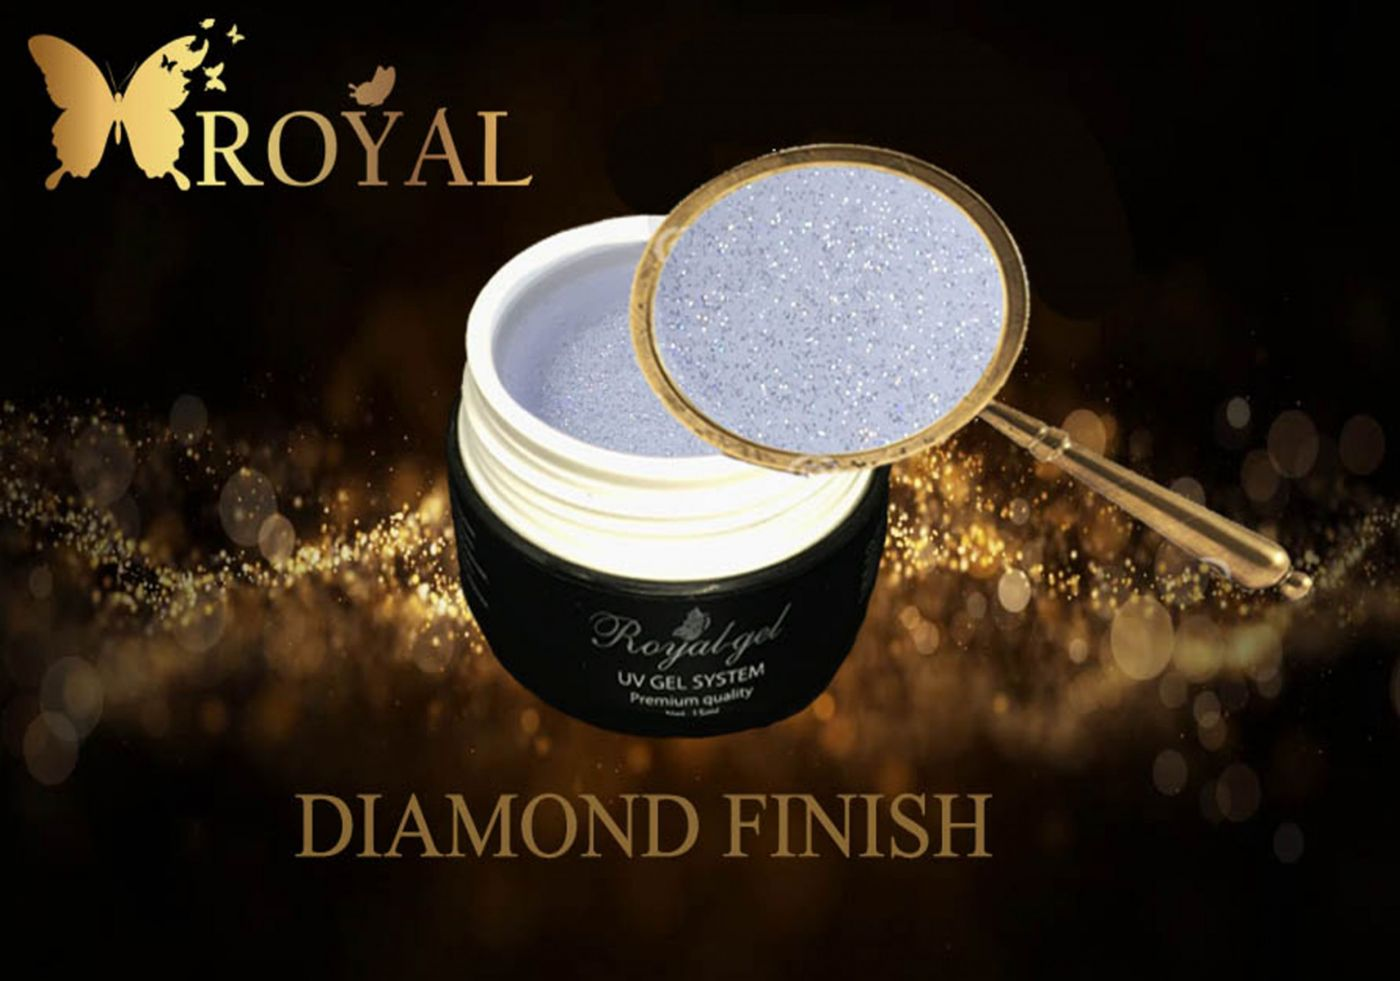 DIAMOND FINISH ROYAL GEL финишный гель c микроблеском